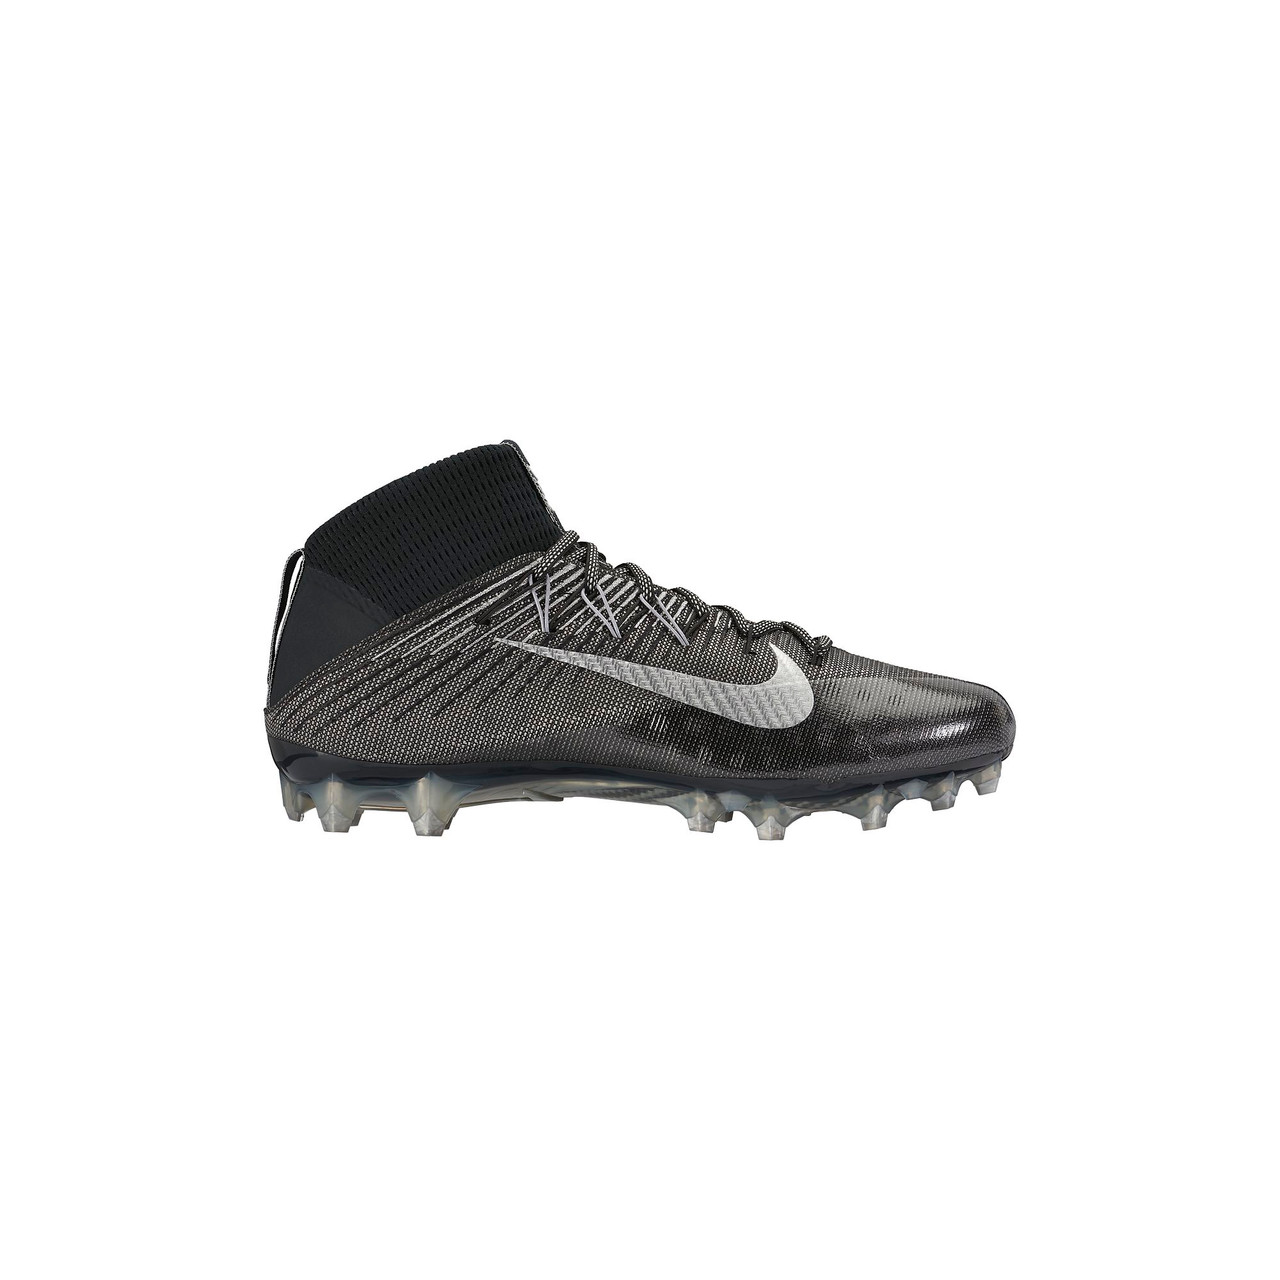 eb19d3cc1e7a Men's Nike Vapor Untouchable 2 Football Cleat - Sieverts Sporting Goods